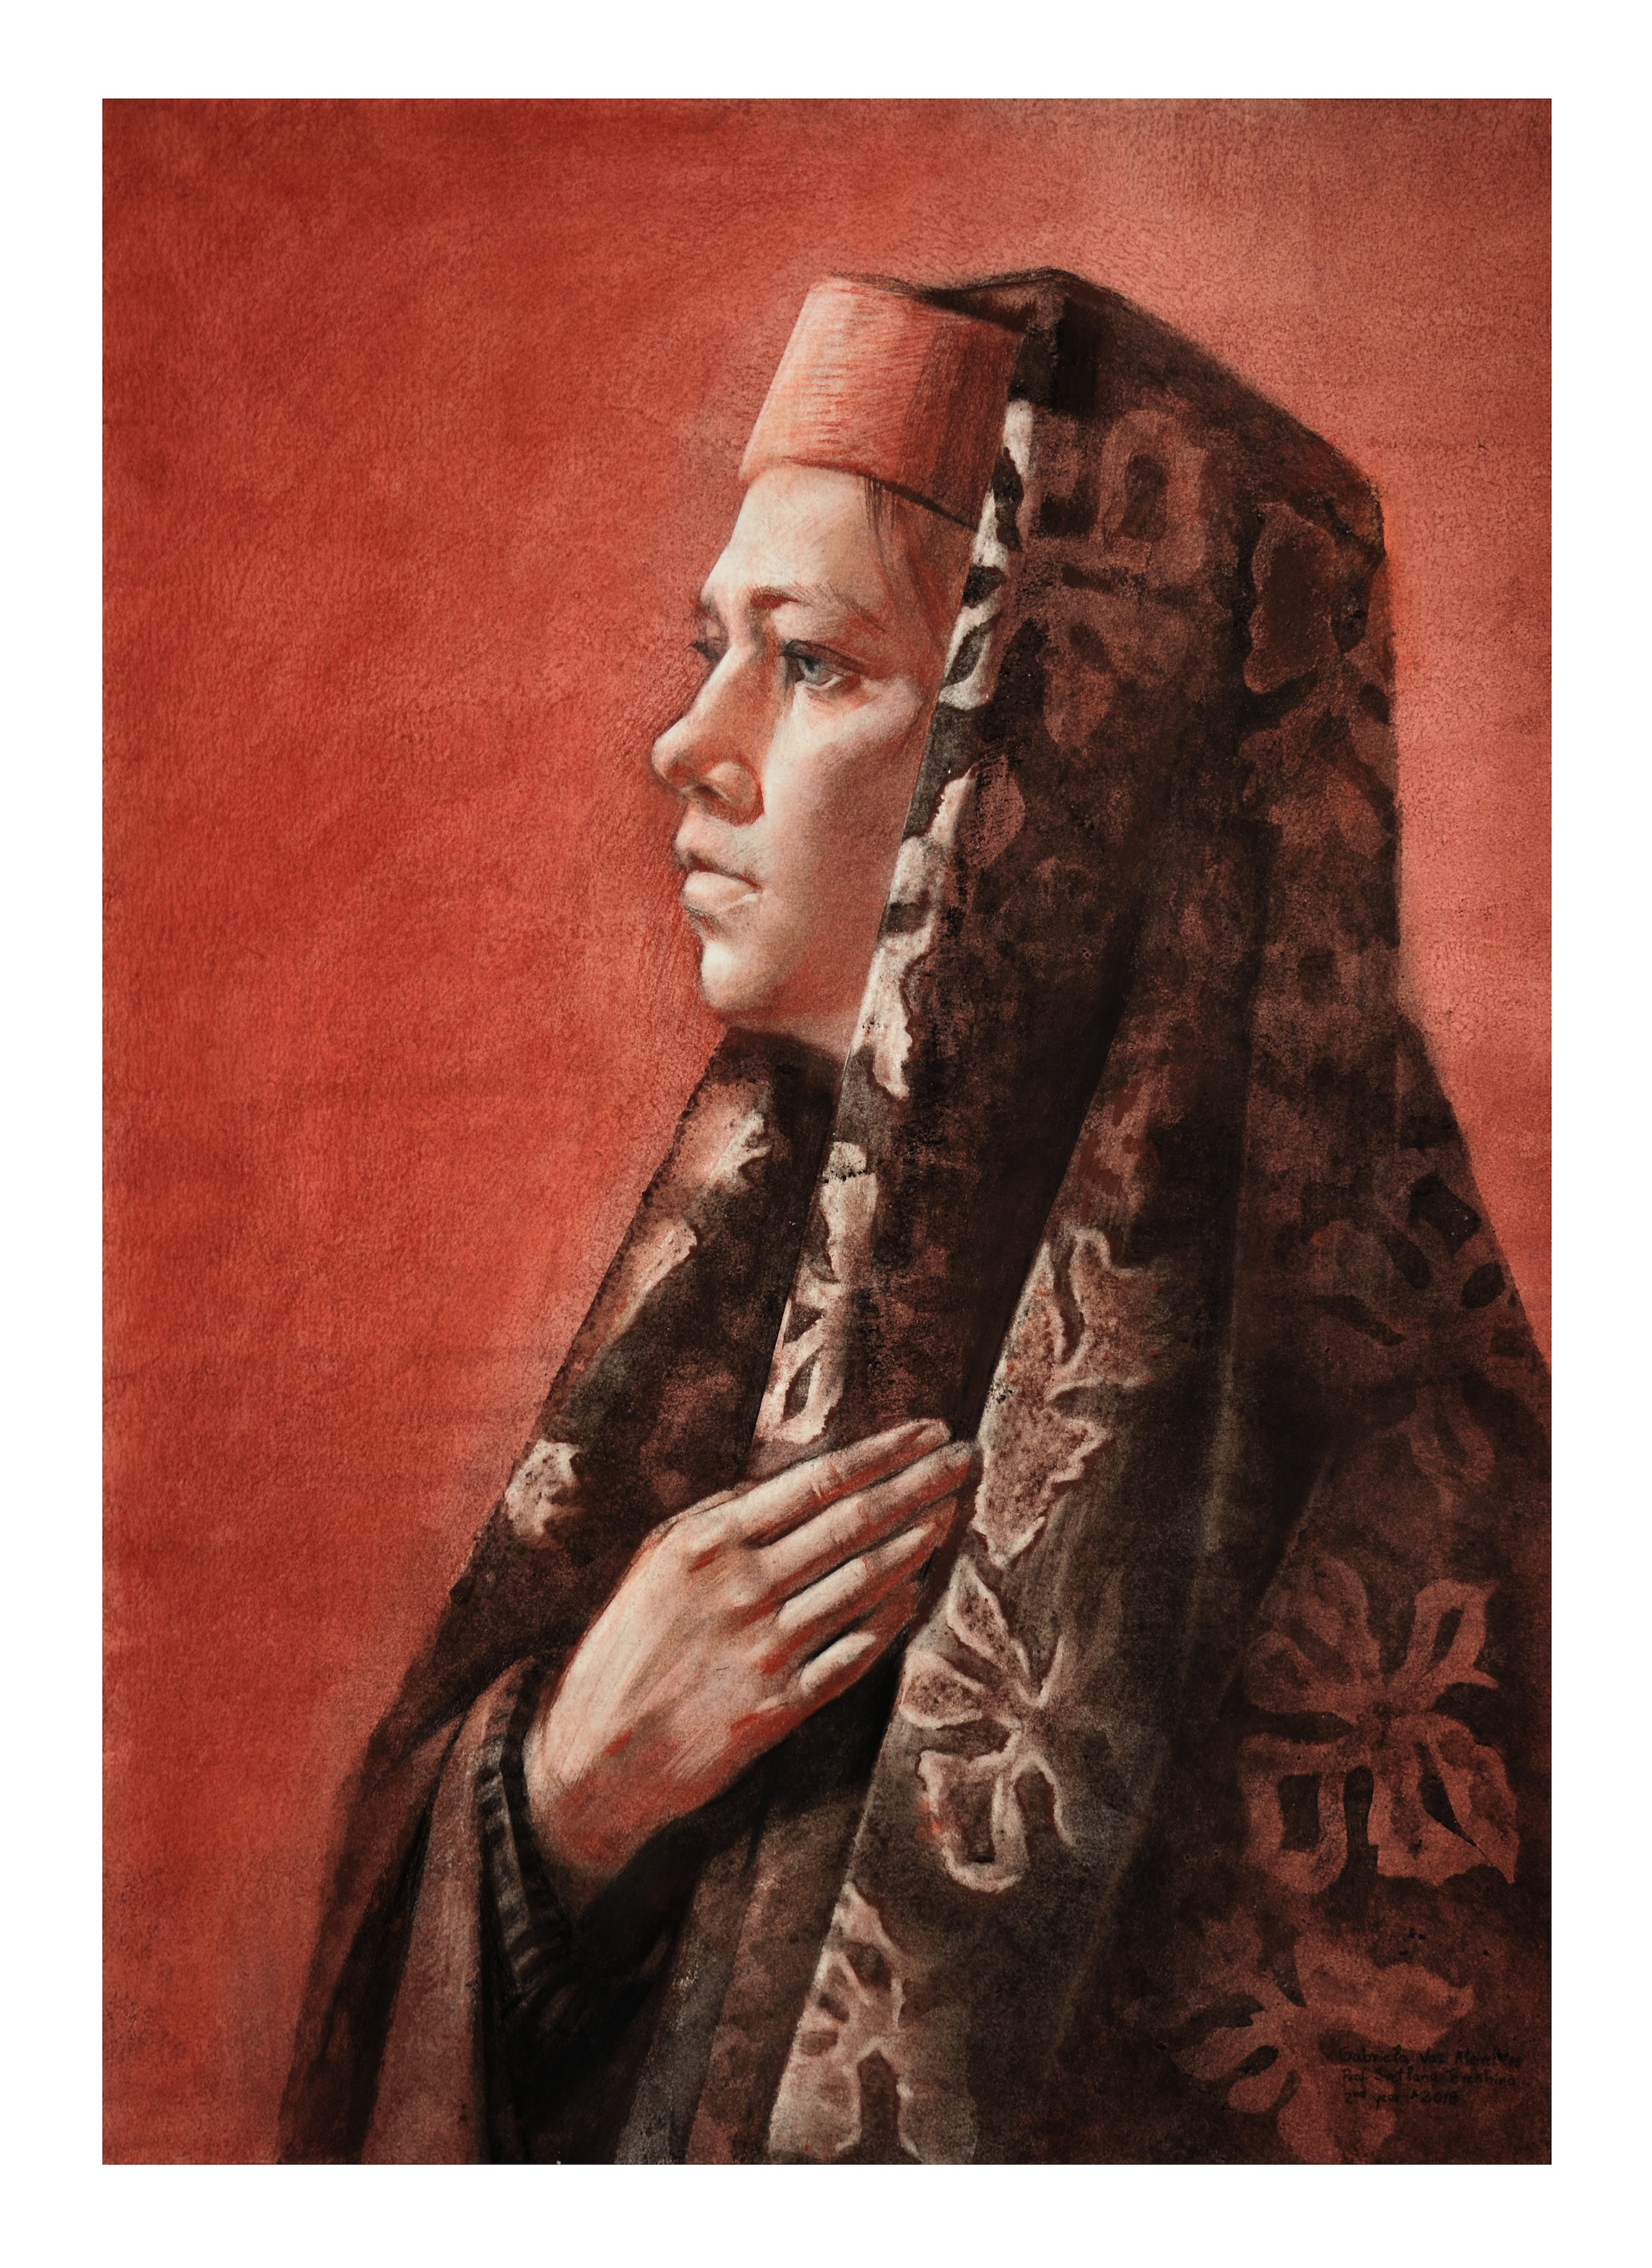 The orthodox russian girl, charcoal and soft pastel on toned paper, 70 x 50 cm, 2018